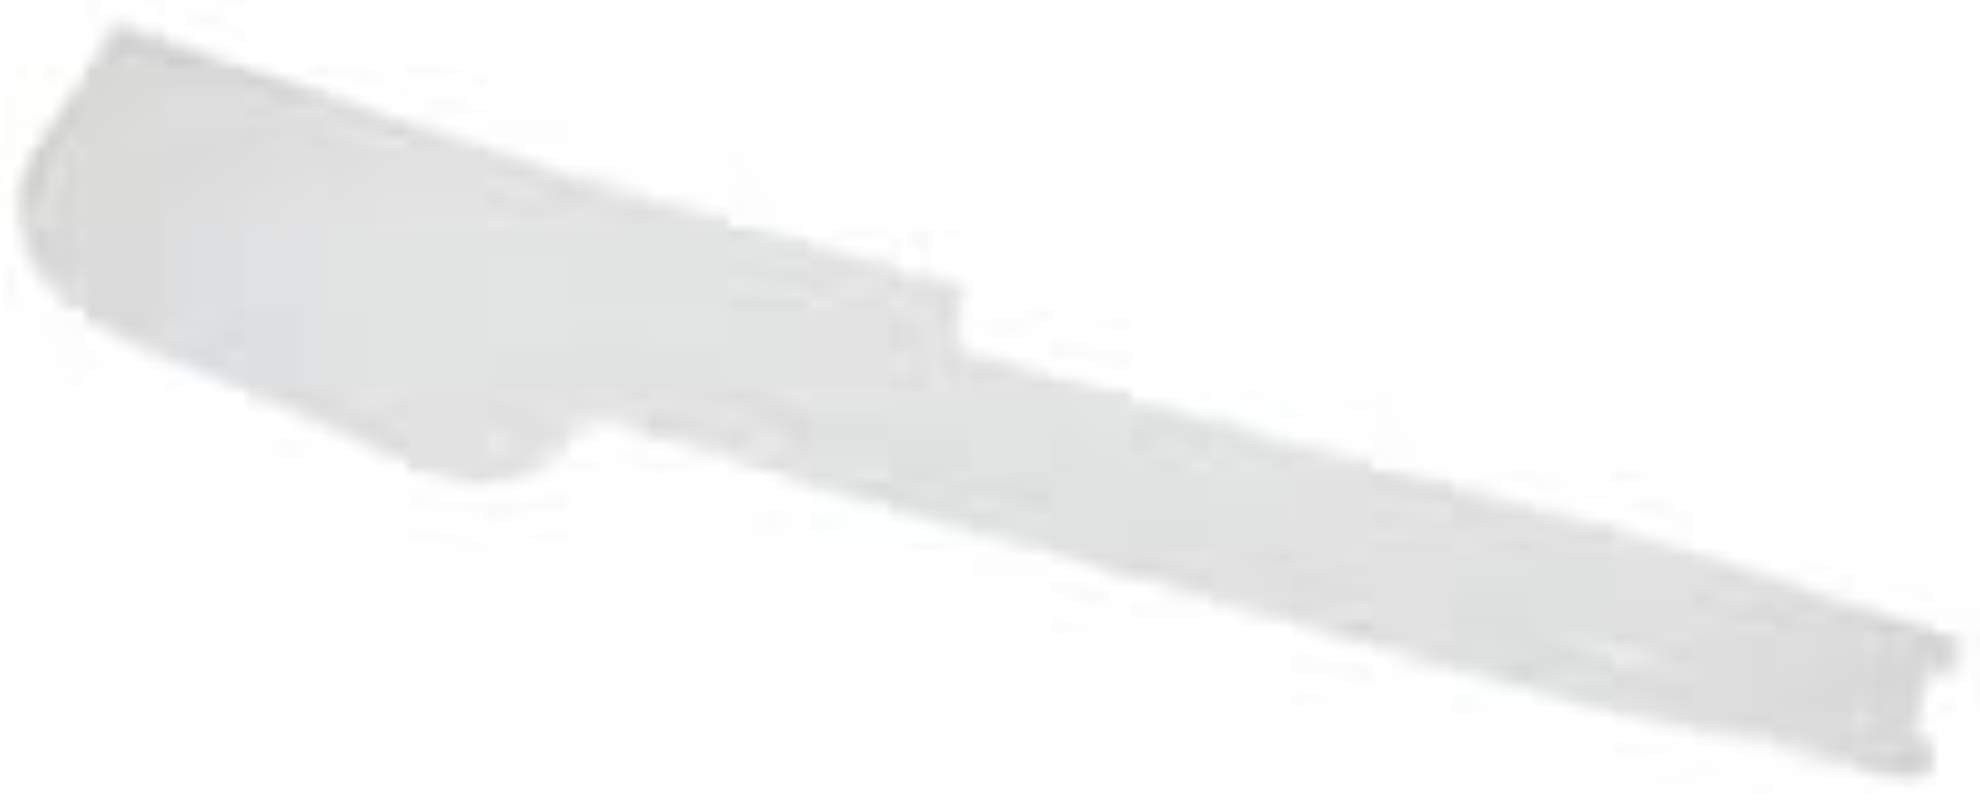 Kenwood 677621 Cooking Spatula Brought To You By BuyParts